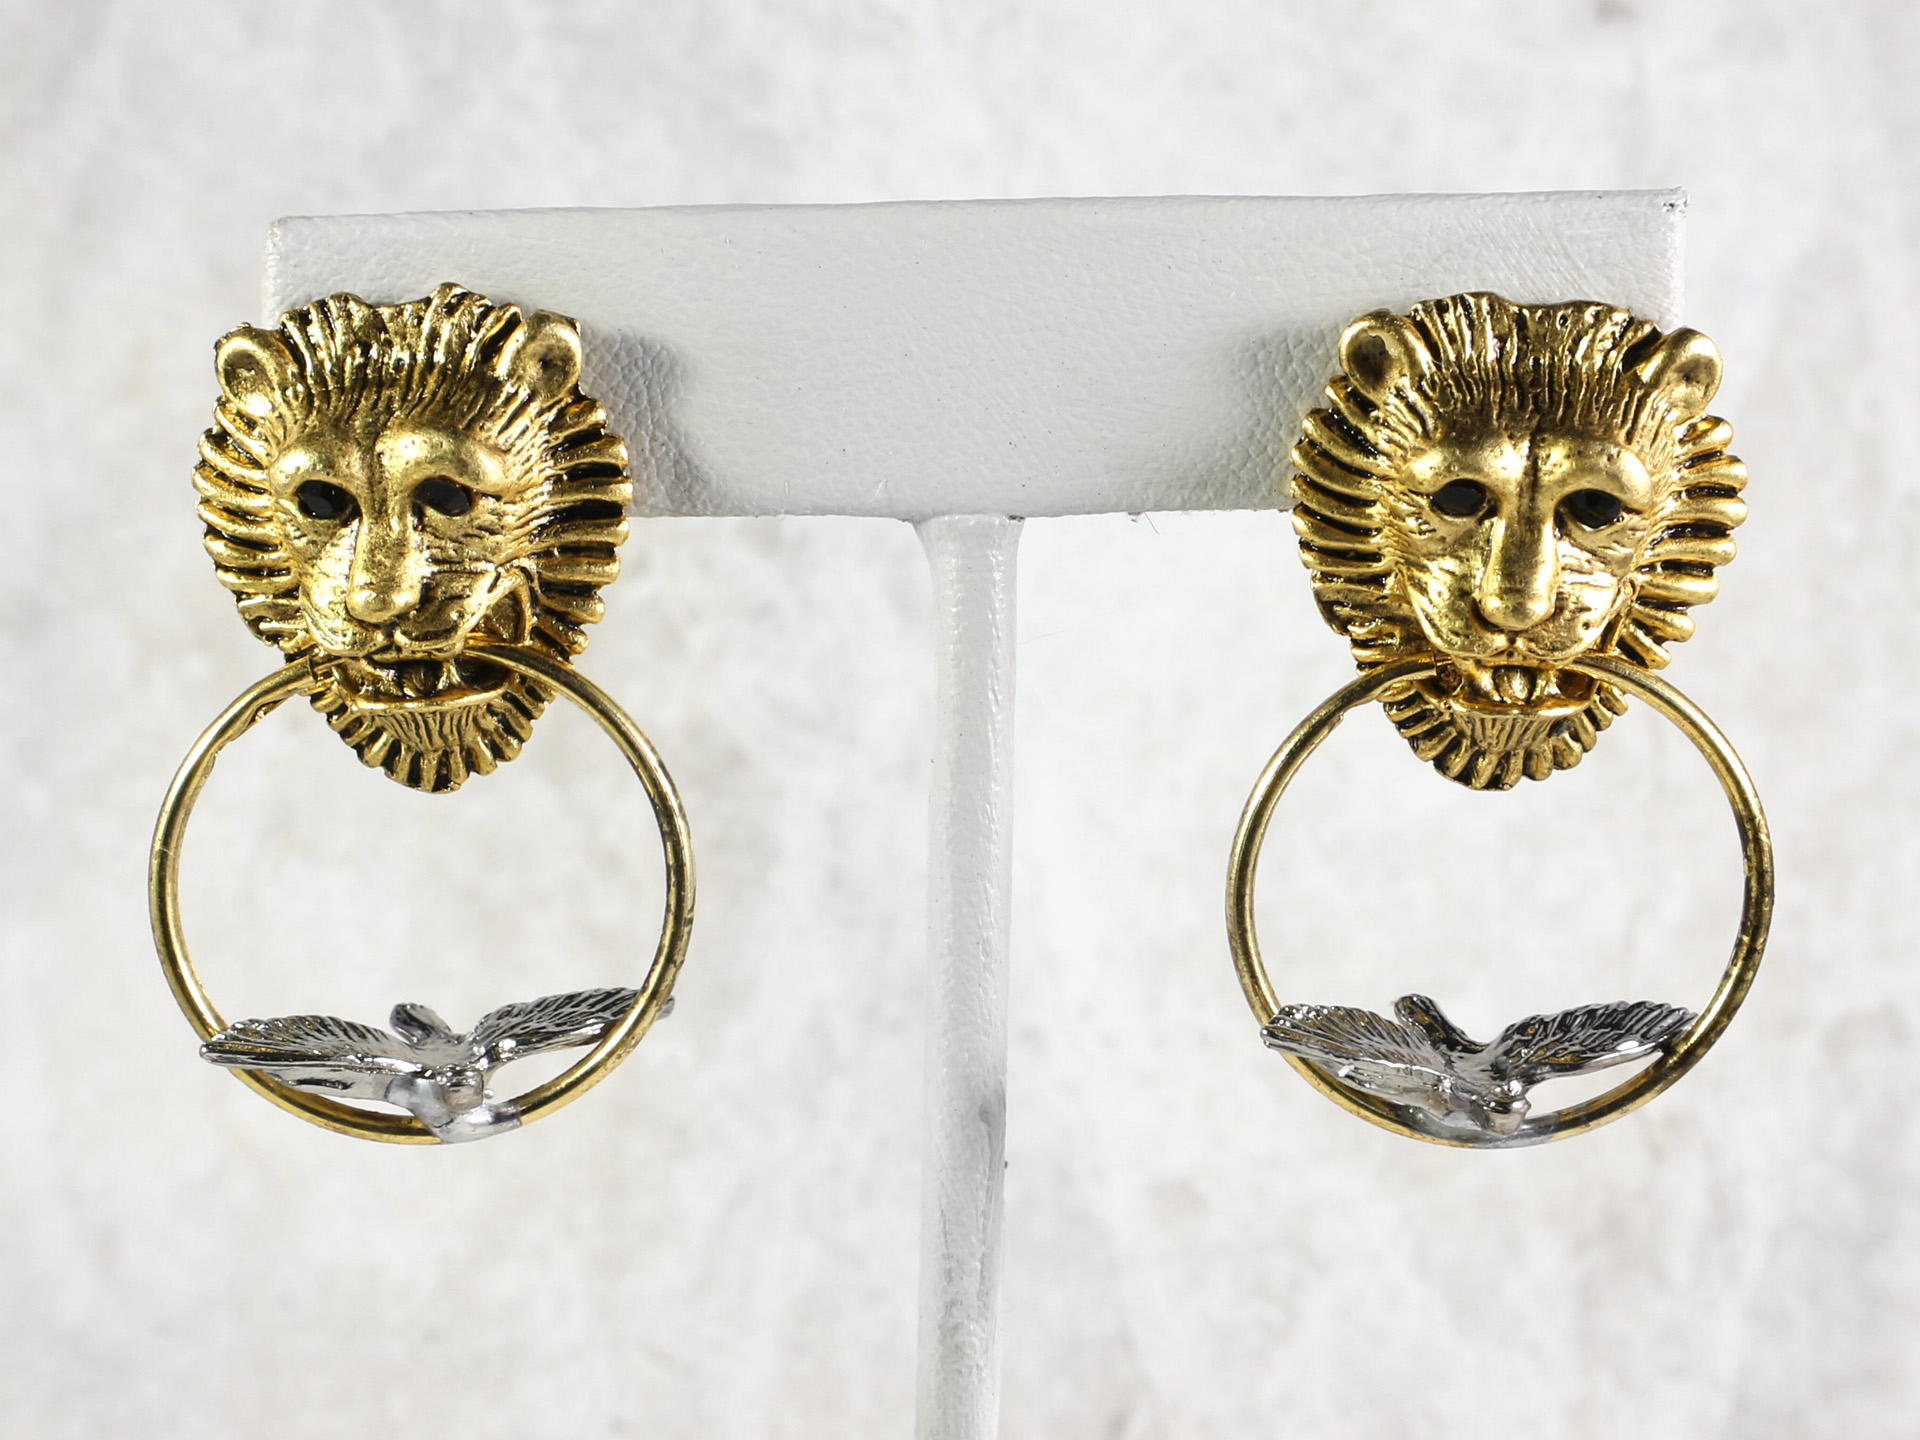 Lion And Bird Door Knocker Earrings, E192